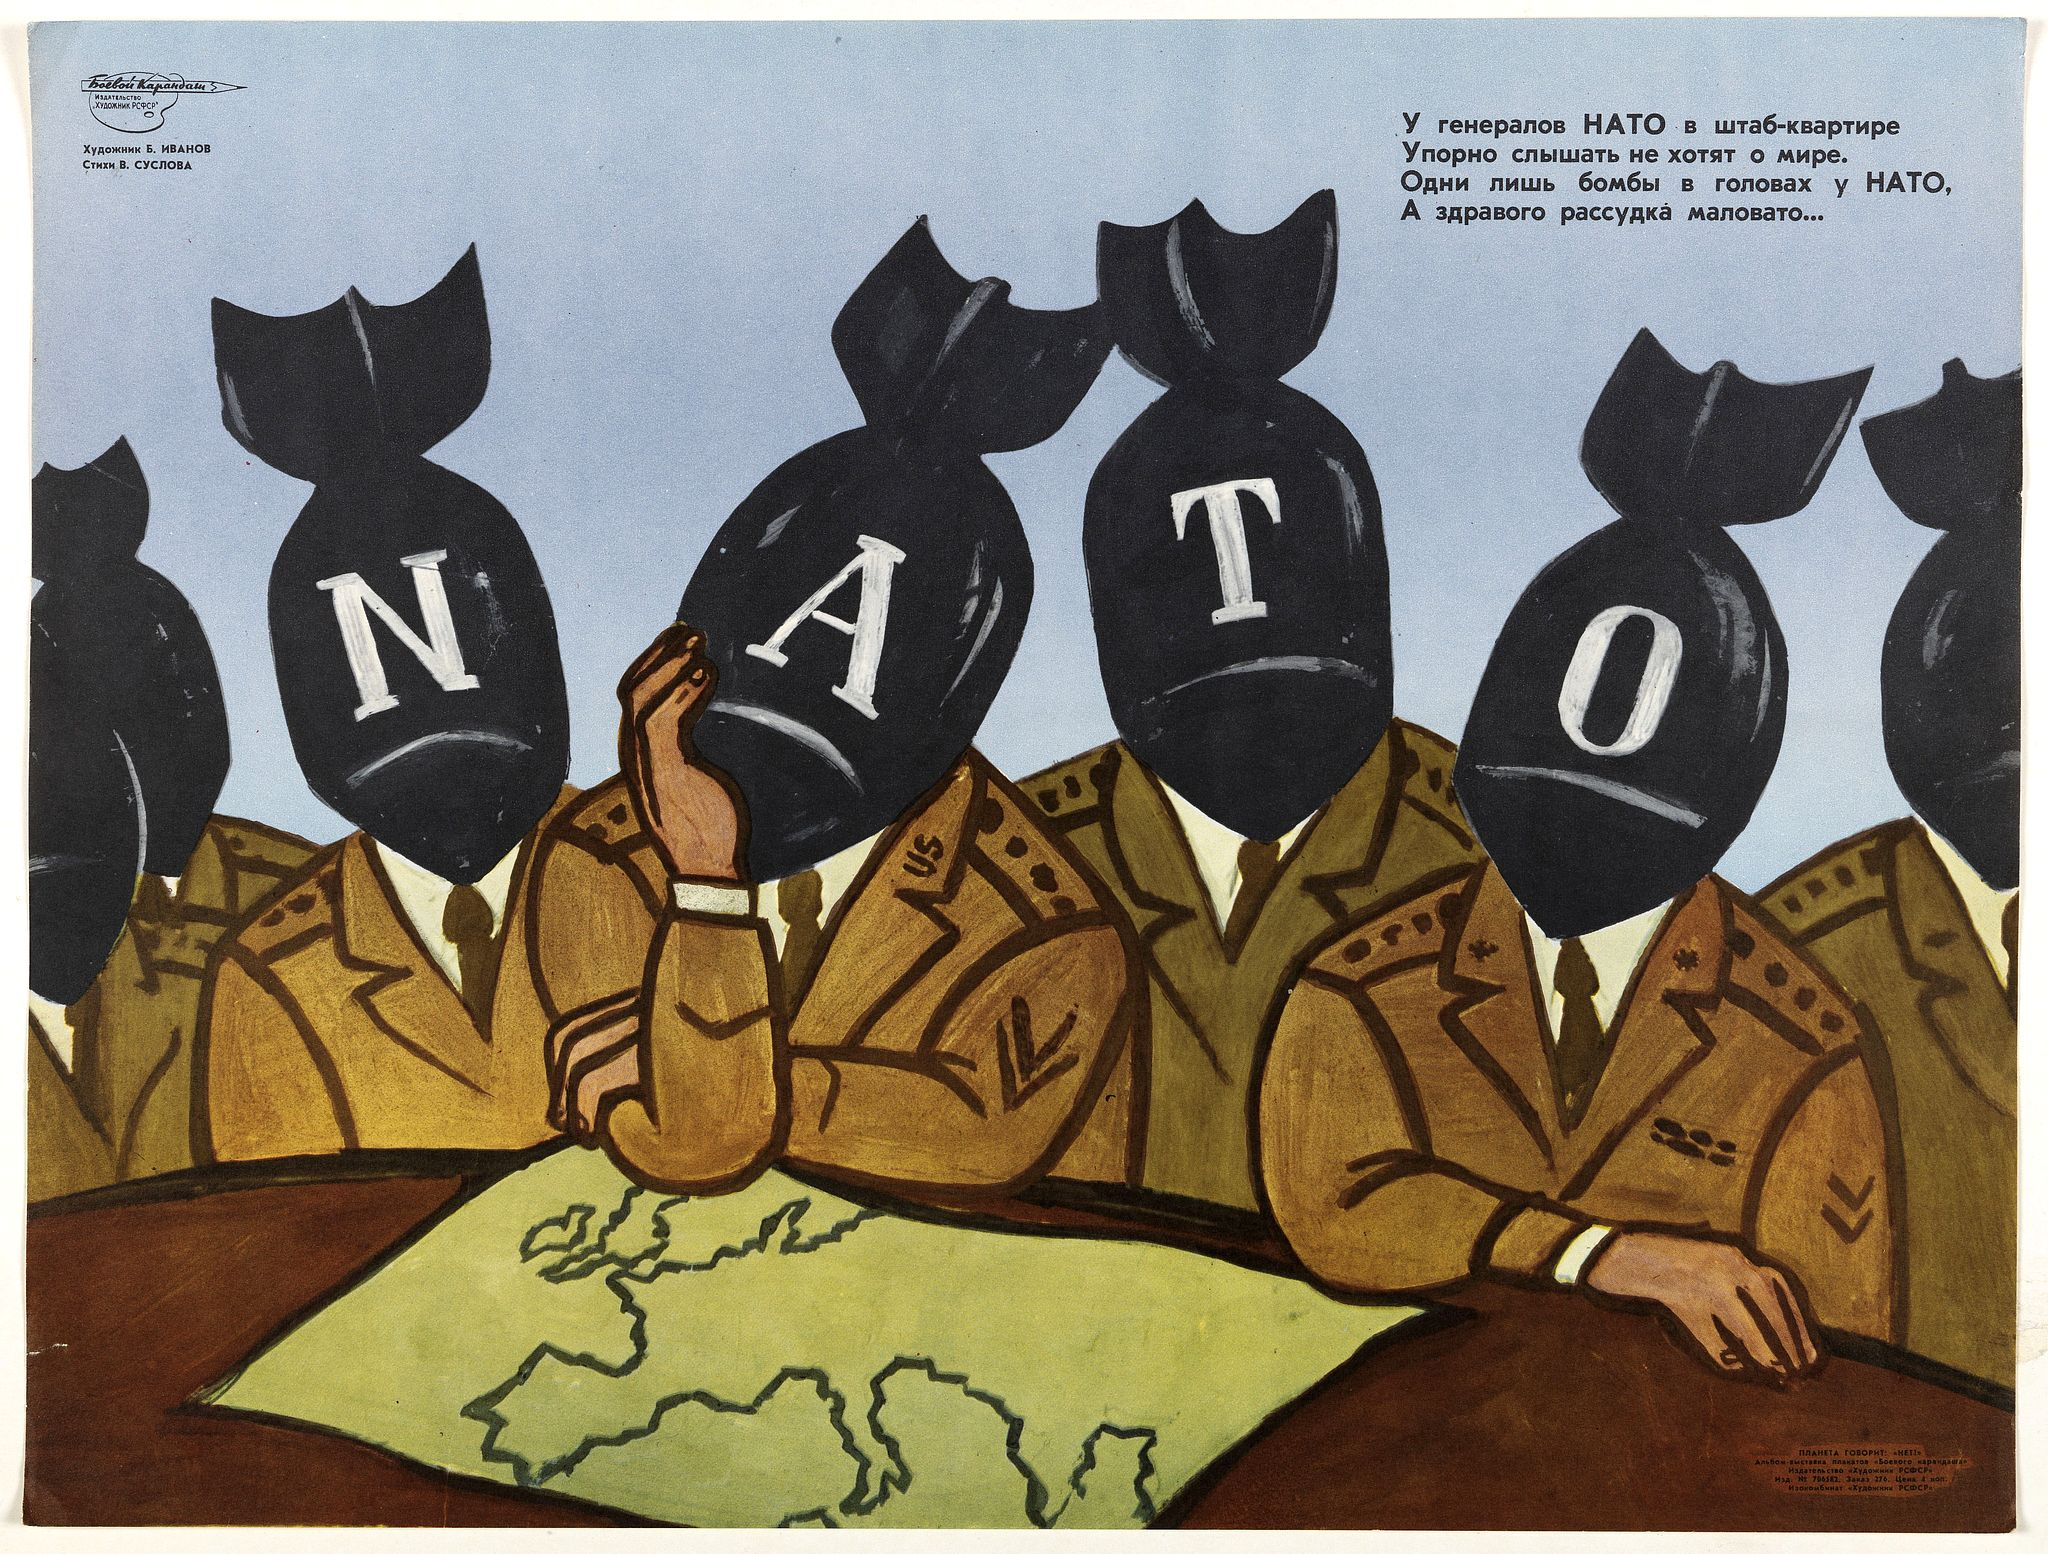 IVANOV, B. -  The NATO generals at headquarters do not want to hear about peace . . .